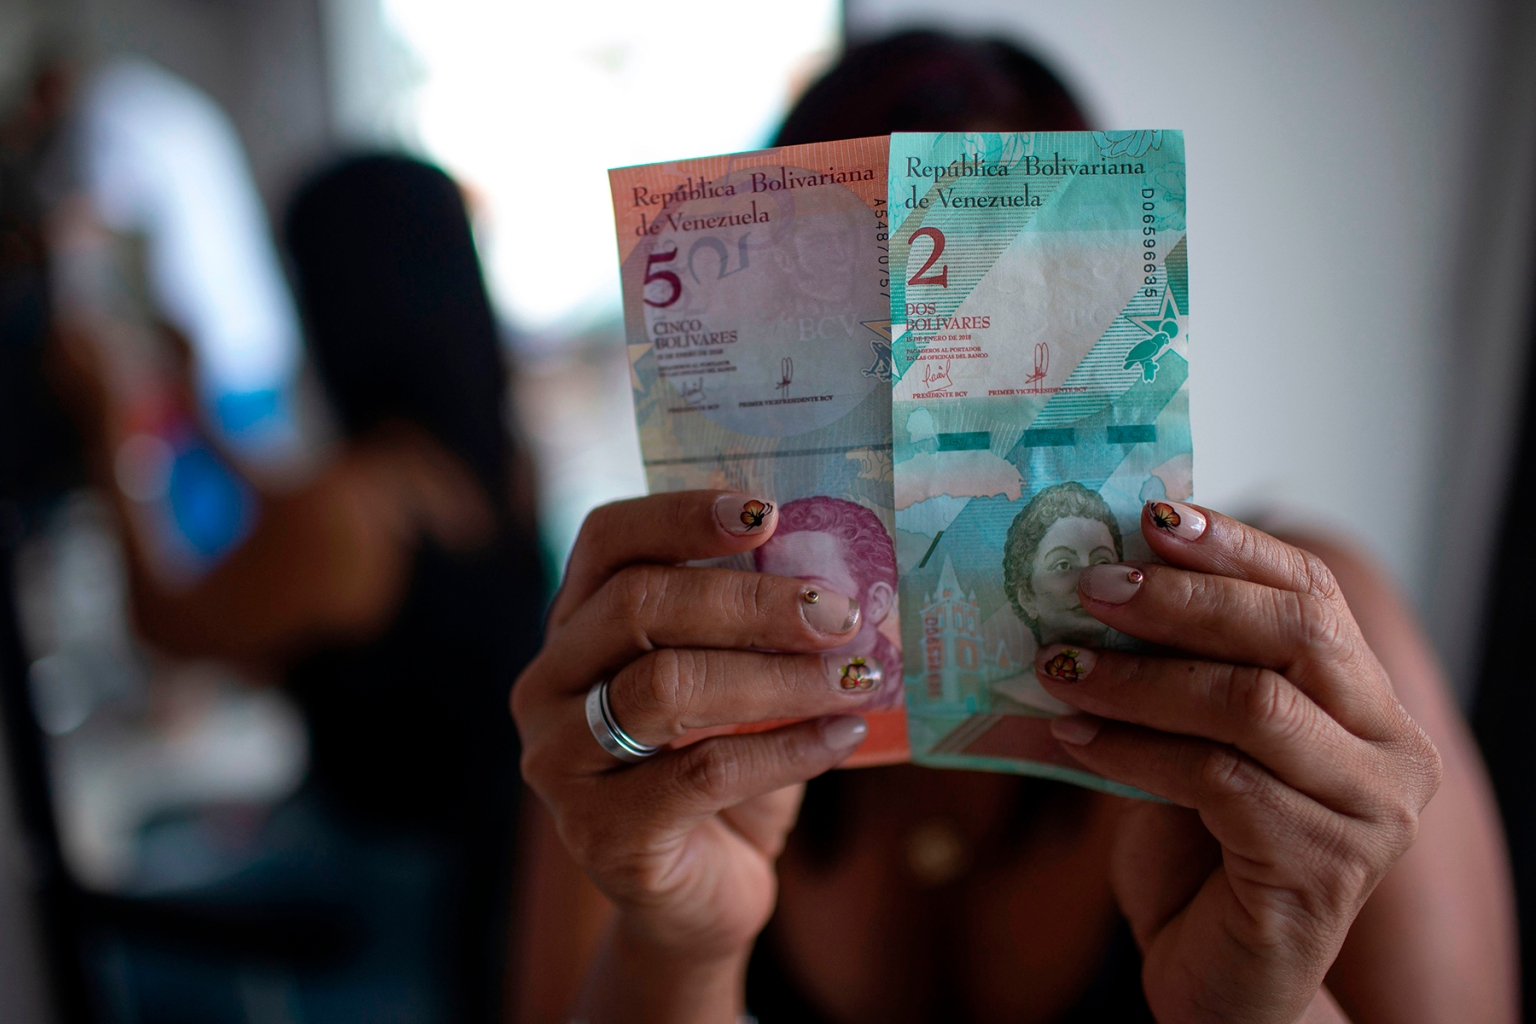 A woman shows bills of the new Venezuelan currency—the Bolivar Soberano worth 100,000 old Bolivars—at a barbershop in Pacaraima, Brazil, on Aug. 21. Venezuela's ruling Socialists United party issued new currency on Aug. 20 in an attempt to stem hyperinflation, which critics expect to make the country's dire economic situation worse. MAURO PIMENTEL/AFP/Getty Images